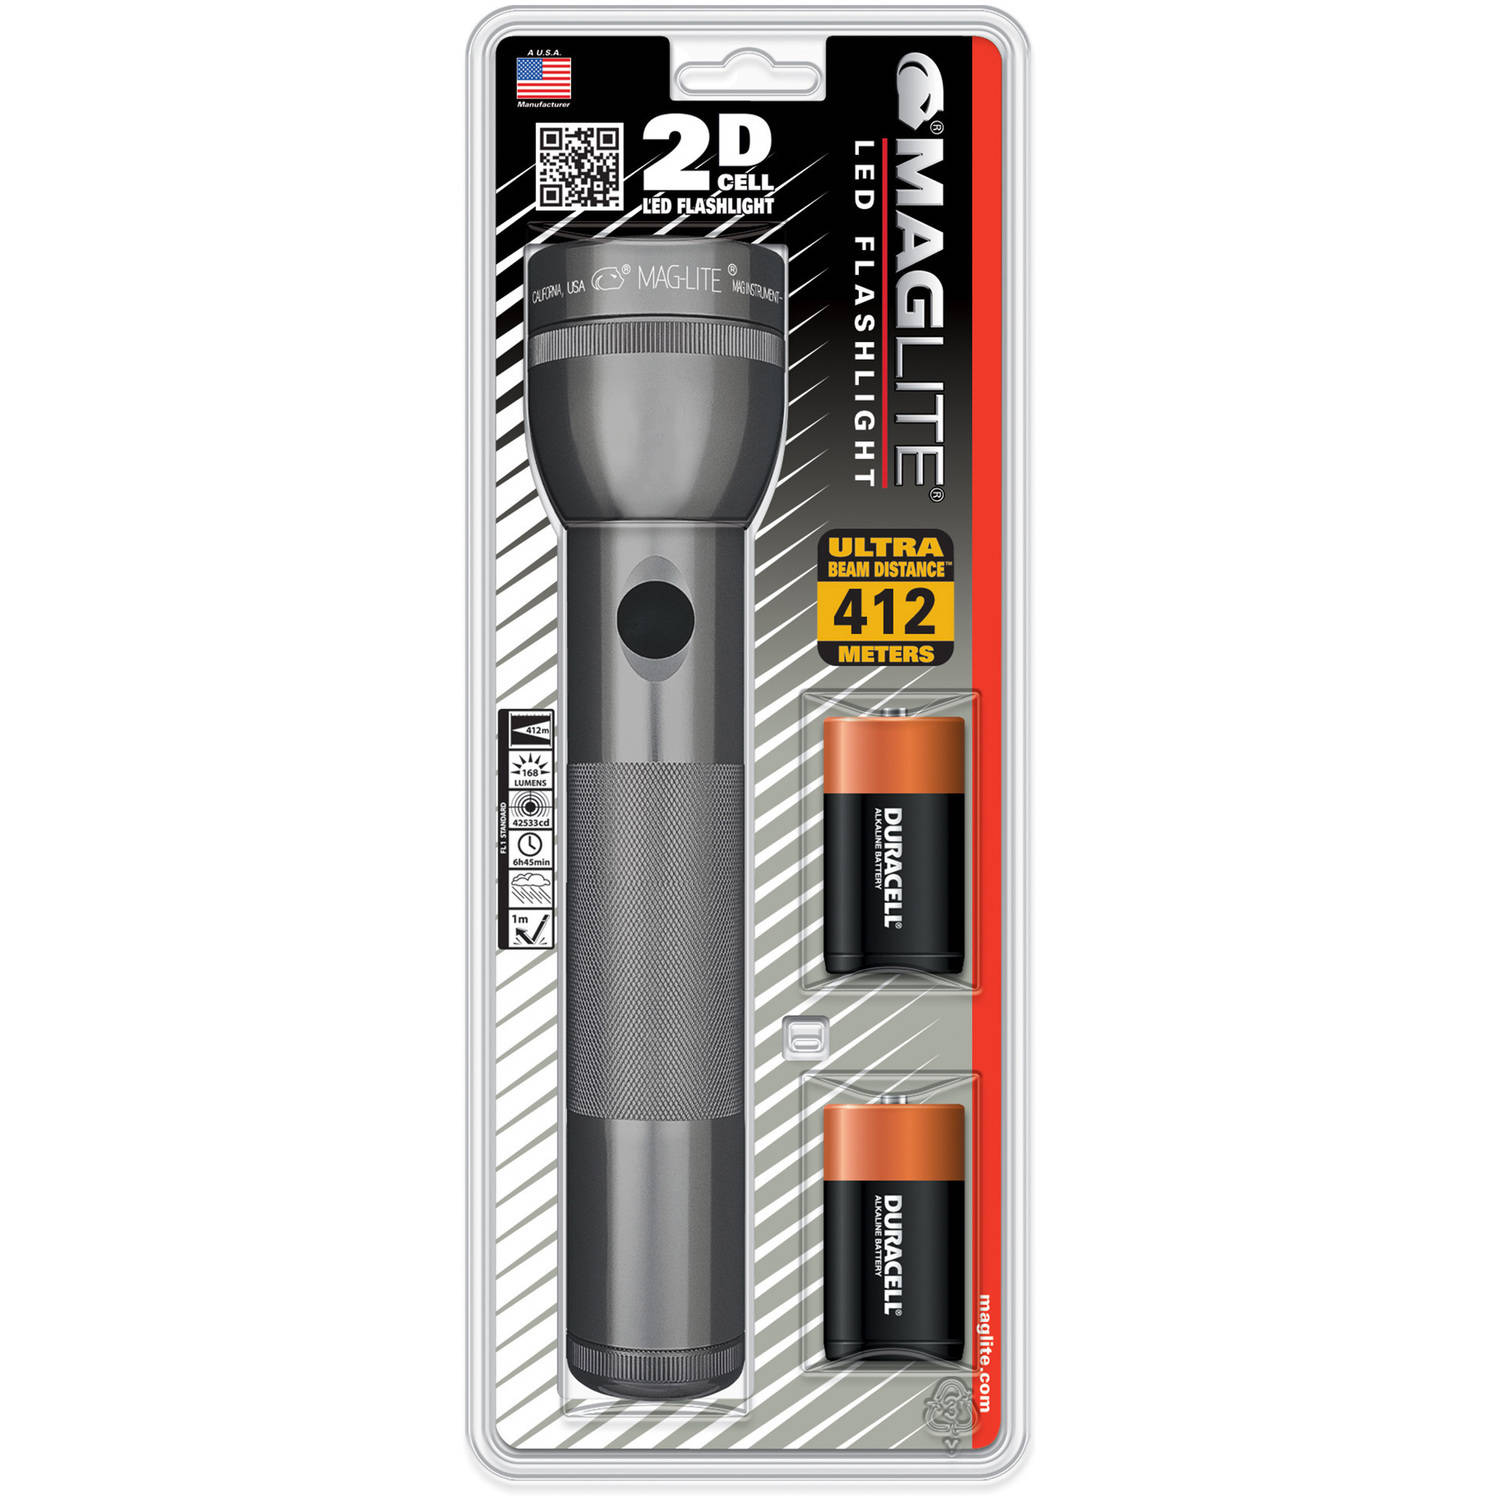 Maglite 2D LED Flashlight with Batteries, Gray